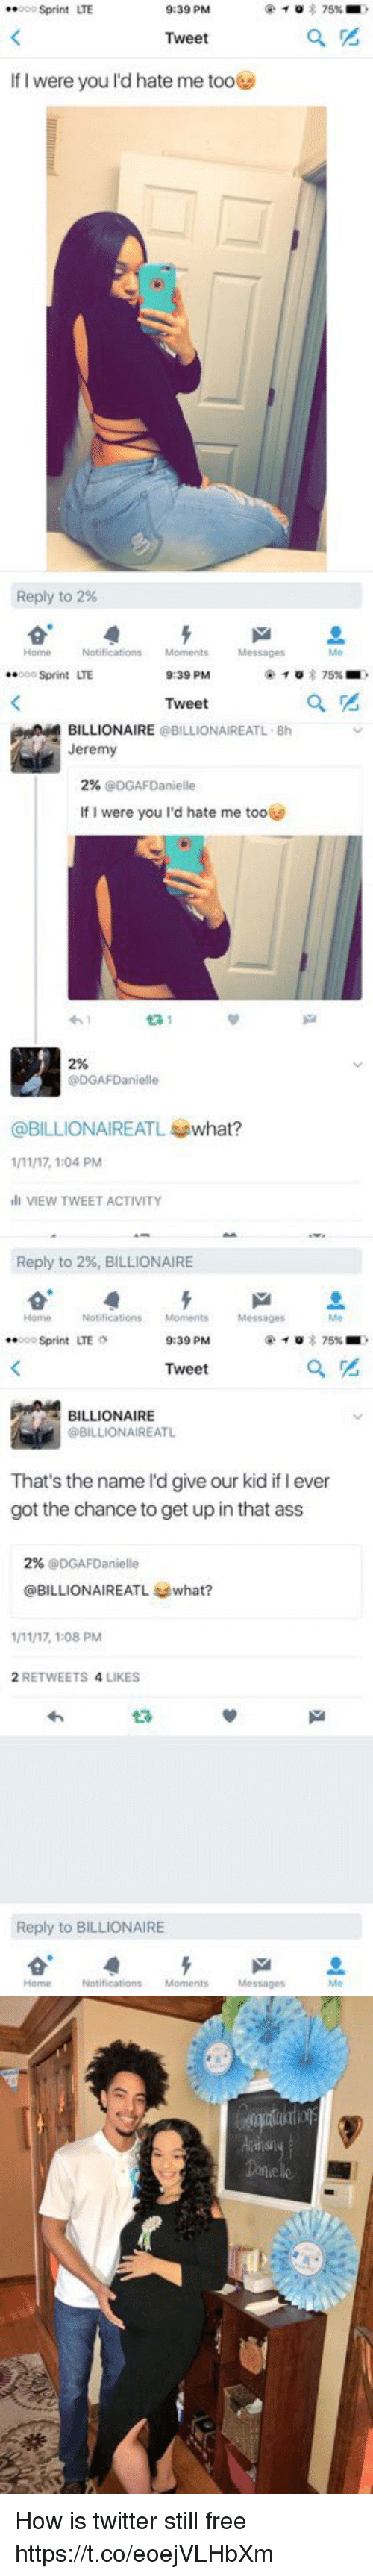 Ass, Twitter, and Free: 8oo Sprint LTE  9:39 PM  Tweet  If I were you I'd hate me toooo  Reply to 2%  HomeNotifications Moments  Messages  Me   ooSprint LTE  9:39 PM  Tweet  BILLIONAIRE @BILLIONAIREATL-8h  Jeremy  2% @DGAFDanielle  If I were you I'd hate me too  わ!  2%  @DGAFDanielle  @BILLIONAIREATし@what?  1/11/17, 1:04 PM  ll VIEW TWEET ACTIVITY  Reply to 2%, BILLIONAIRE  HomeNotifications Moments  Messages  Me   .. 000 Sprint  LTE  9:39 PM  Tweet  BILLIONAIRE  @BILLIONAIREATL  That's the name l'd give our kid if I ever  got the chance to get up in that ass  2% @DGAFDanielle  @BILLIONAIREATL what?  1/11/17, 1:08 PM  2 RETWEETS 4 LIKES  わ  Reply to BILLIONAIRE  Home Notifications Moments Messages  Me How is twitter still free https://t.co/eoejVLHbXm